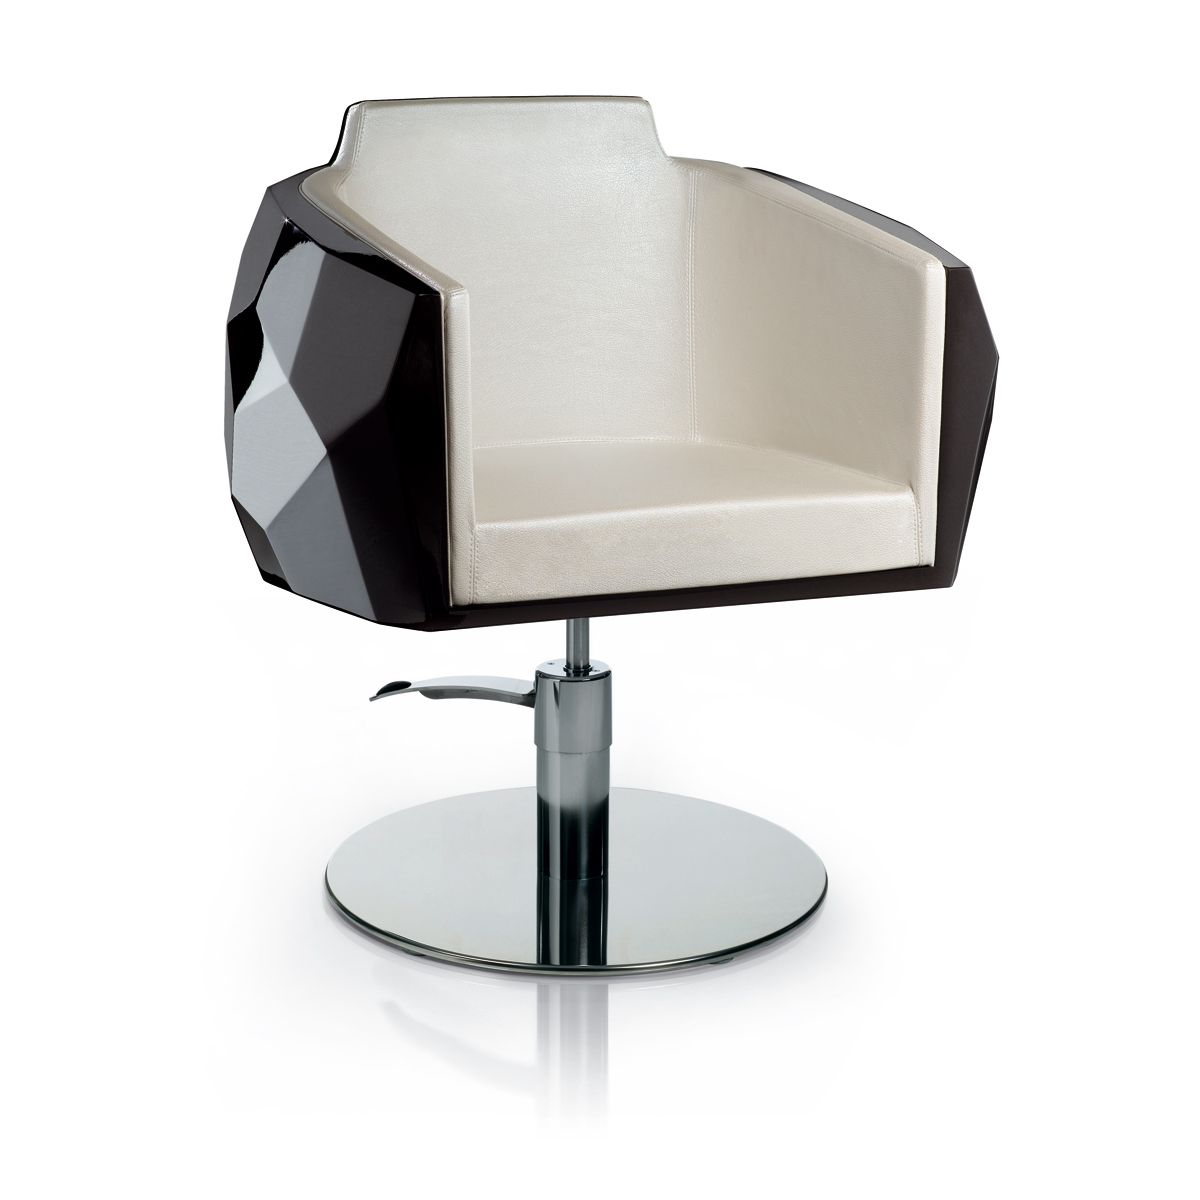 Crystal Coiff Salon Chair   MGBross Fashion Collection In Collaboration  With FENDI Casa